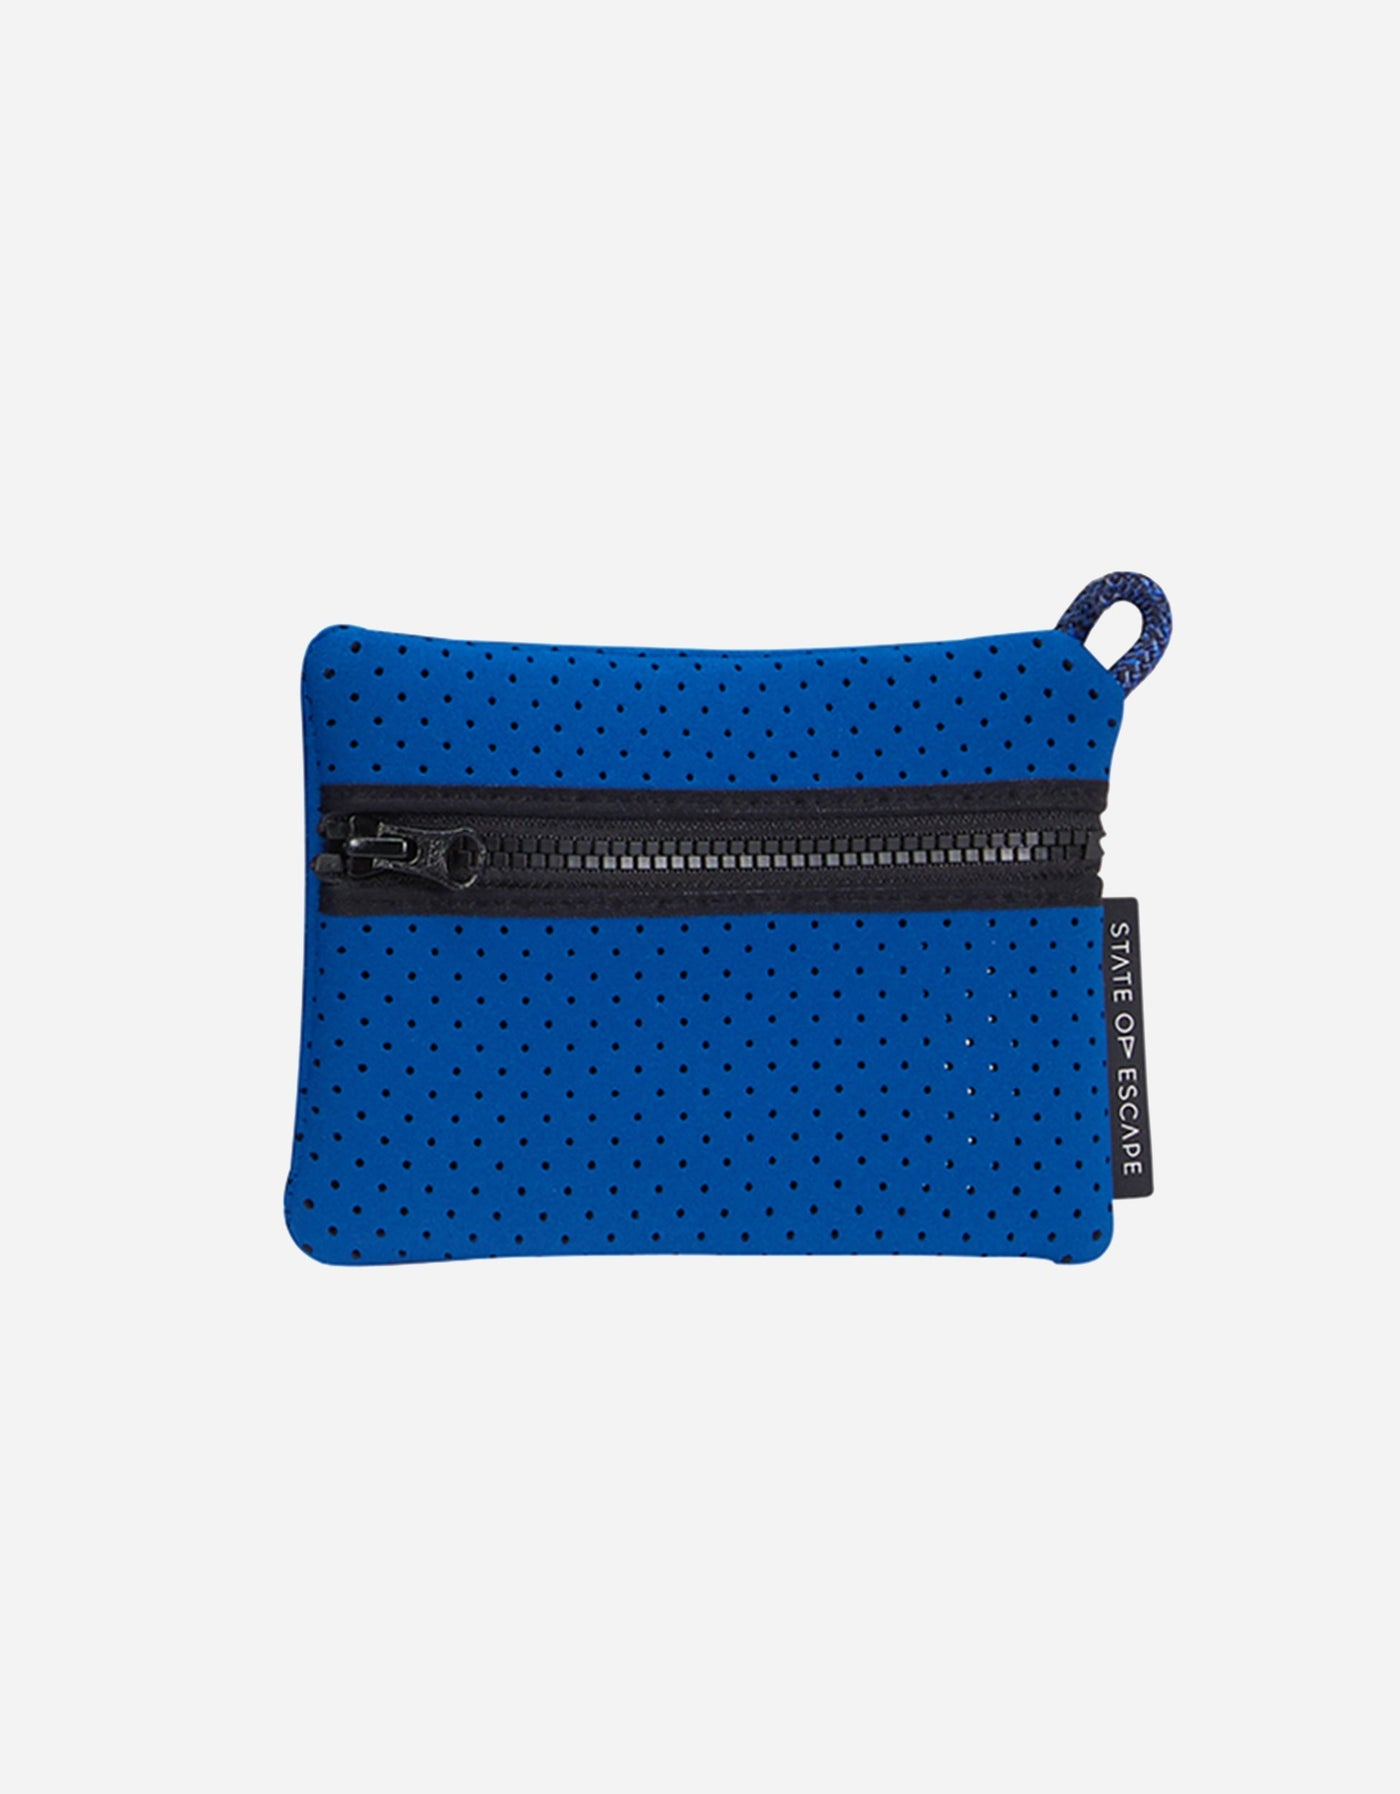 Escape tote in marine blue